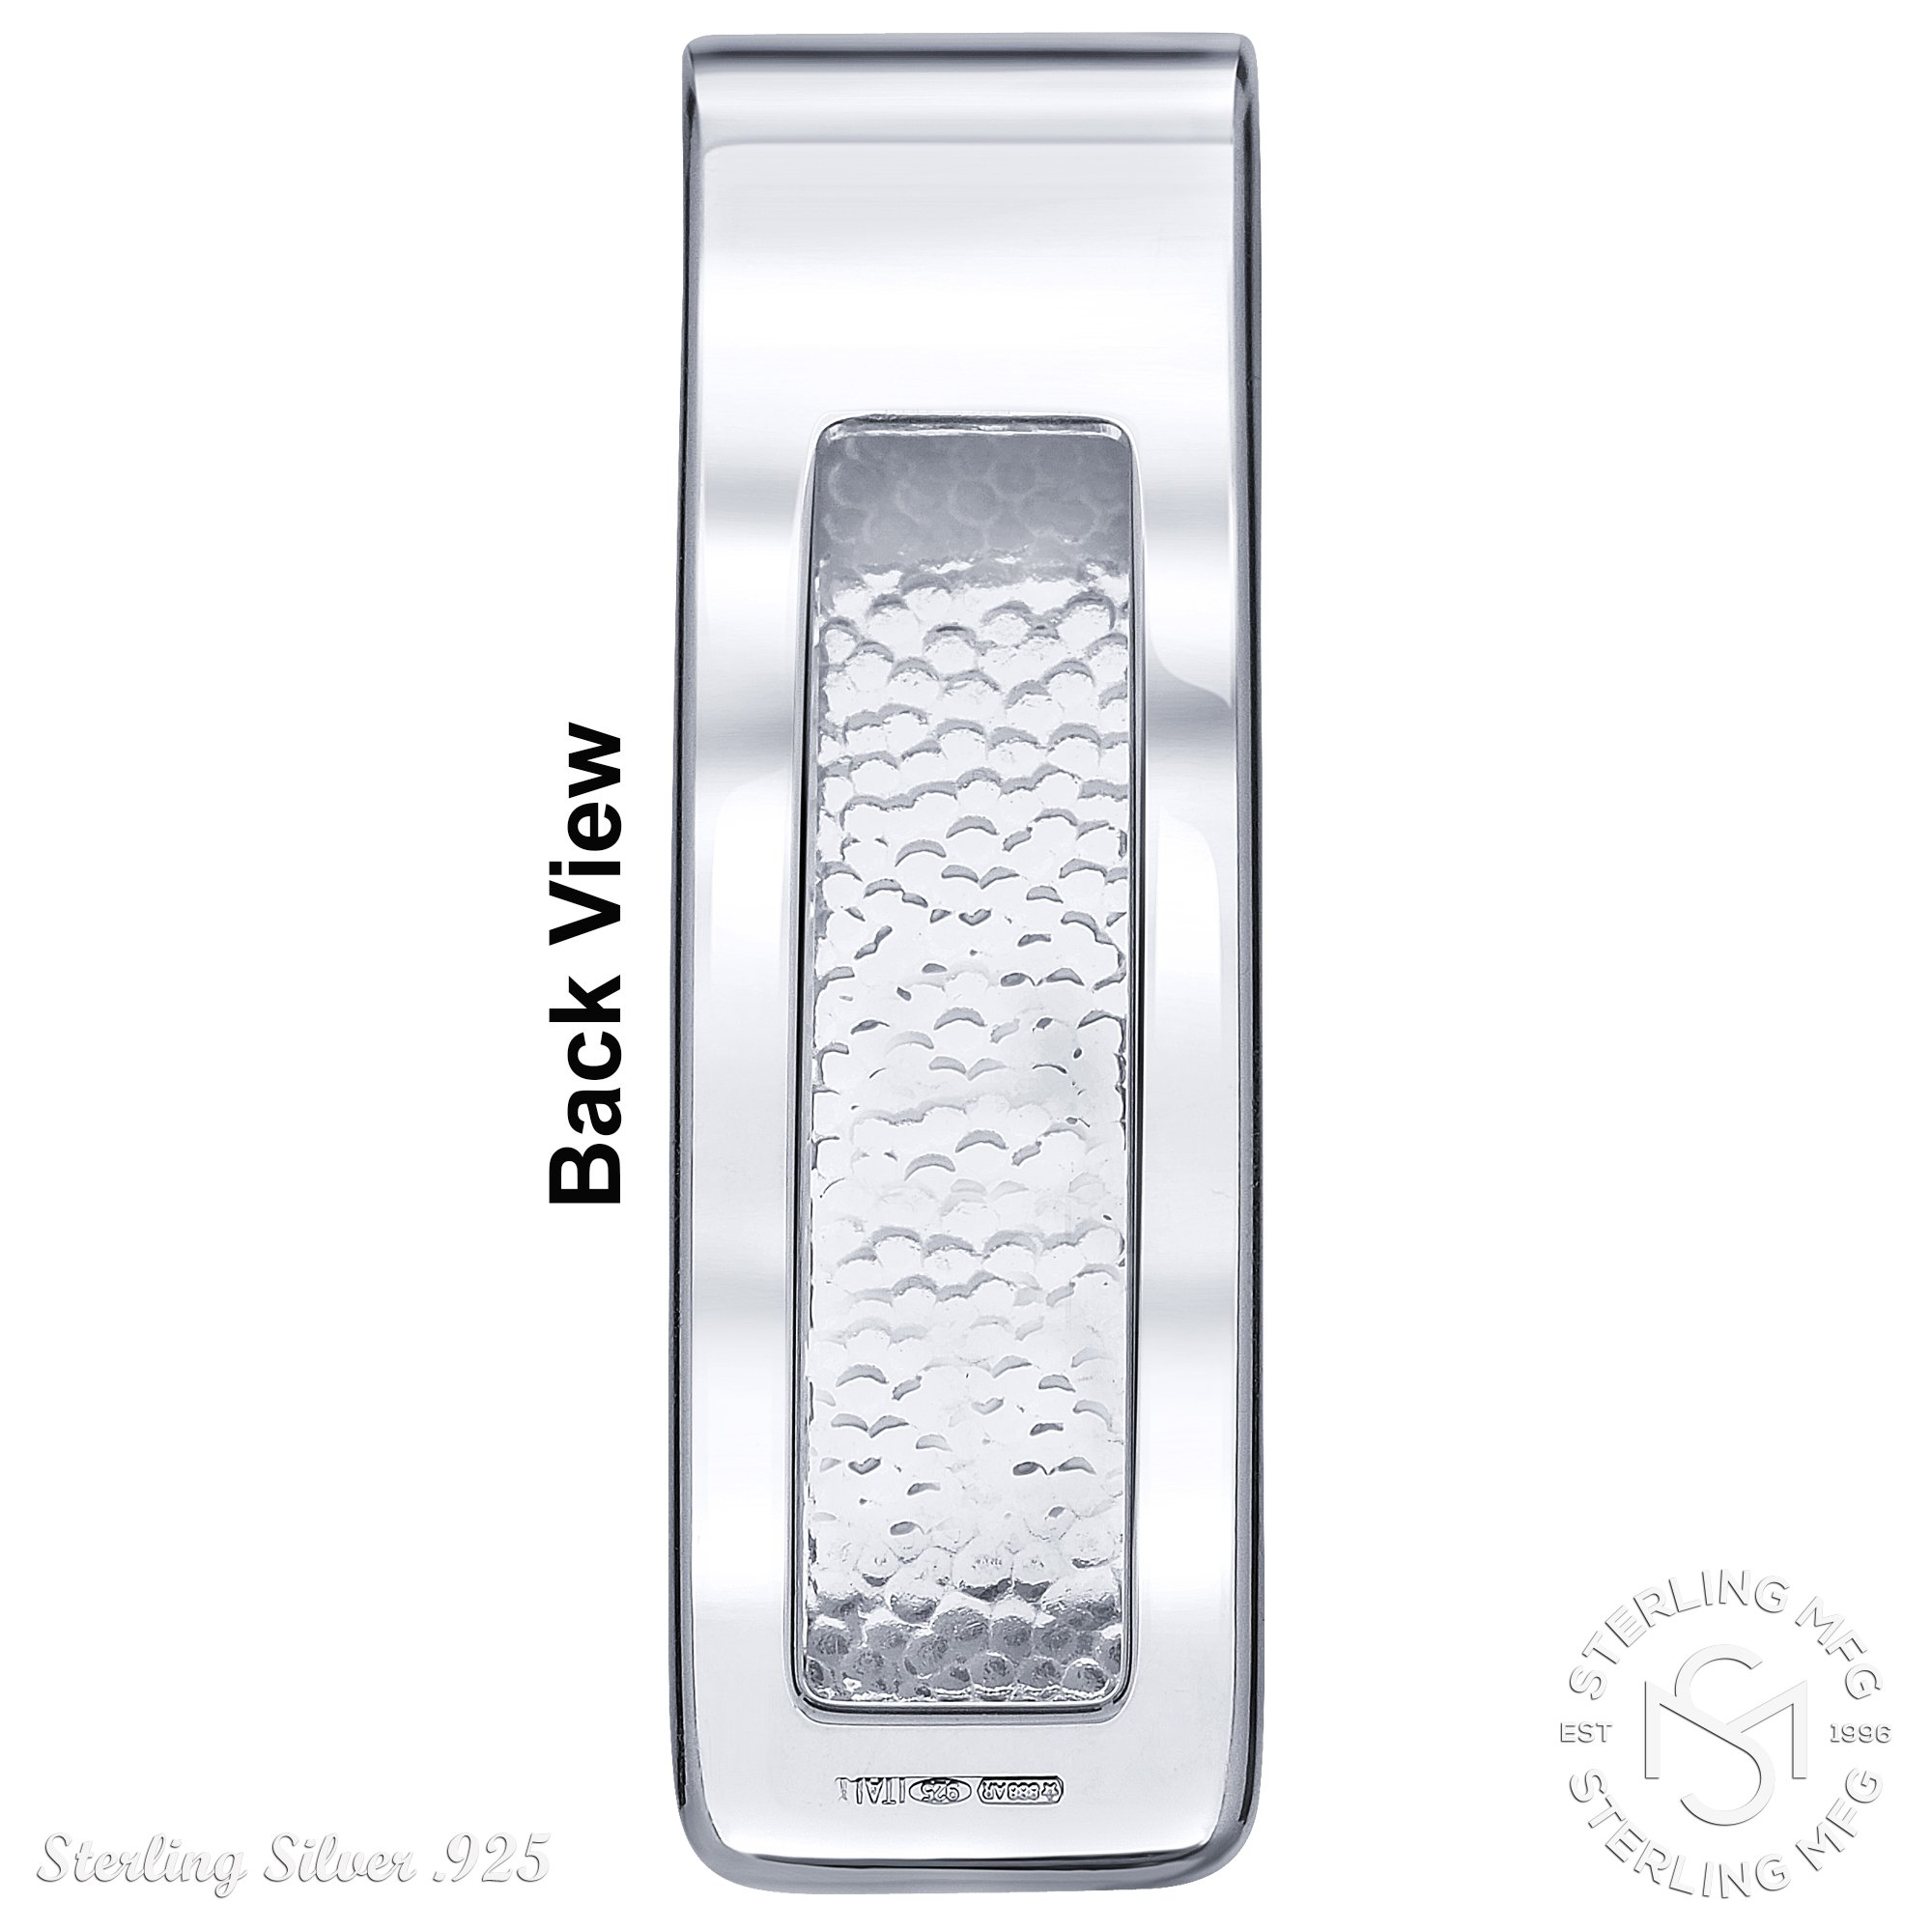 Sterling Silver .925 Money Clip Striped Design with Satin Finish Accent, Pebbled Underside. Designed and Made In Italy. By Sterling Manufacturers by Sterling Manufacturers (Image #7)